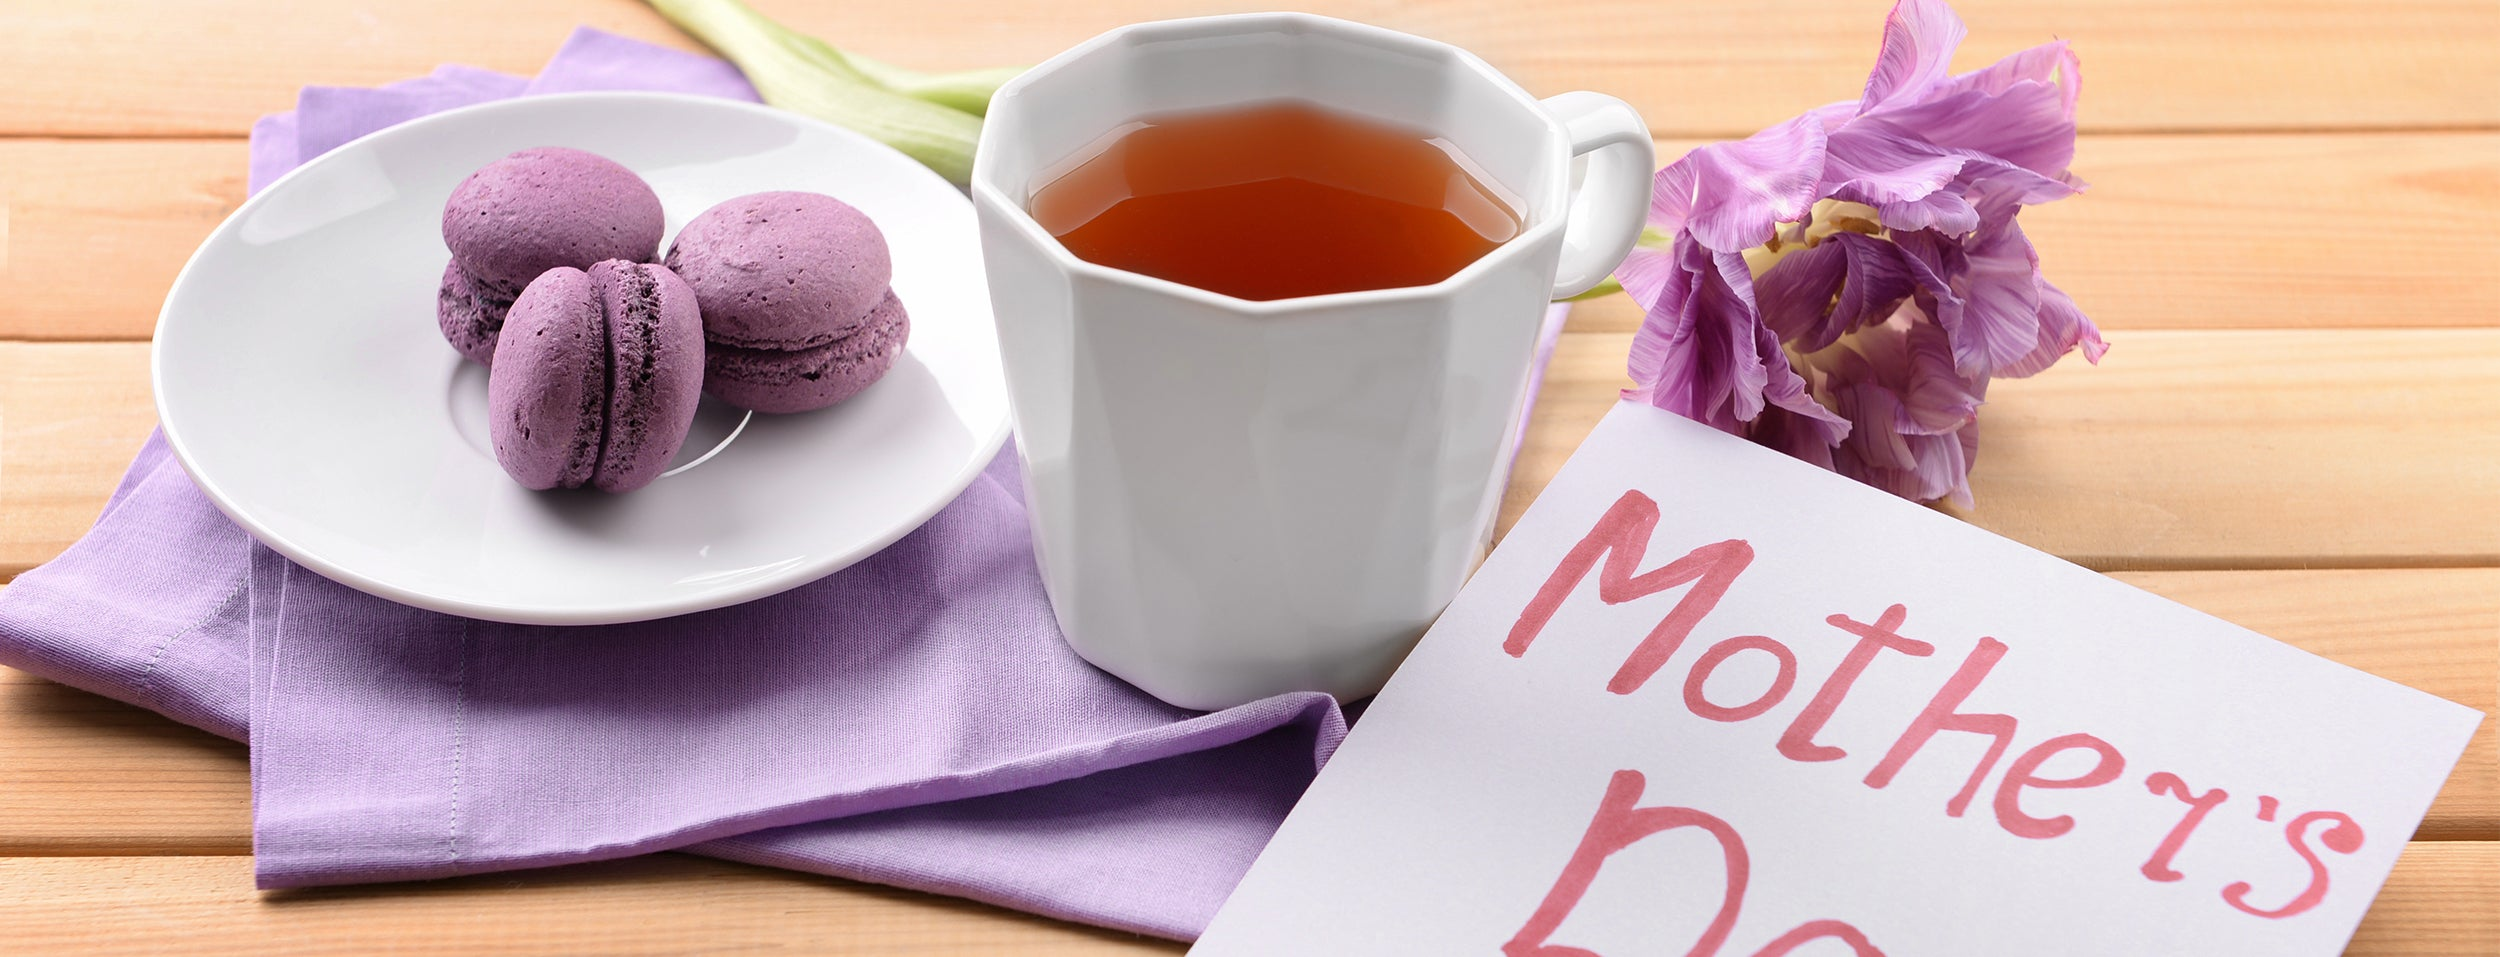 Uptown Tea Shop - Premium Loose Leaf Teas and Accessories - Mother's Day